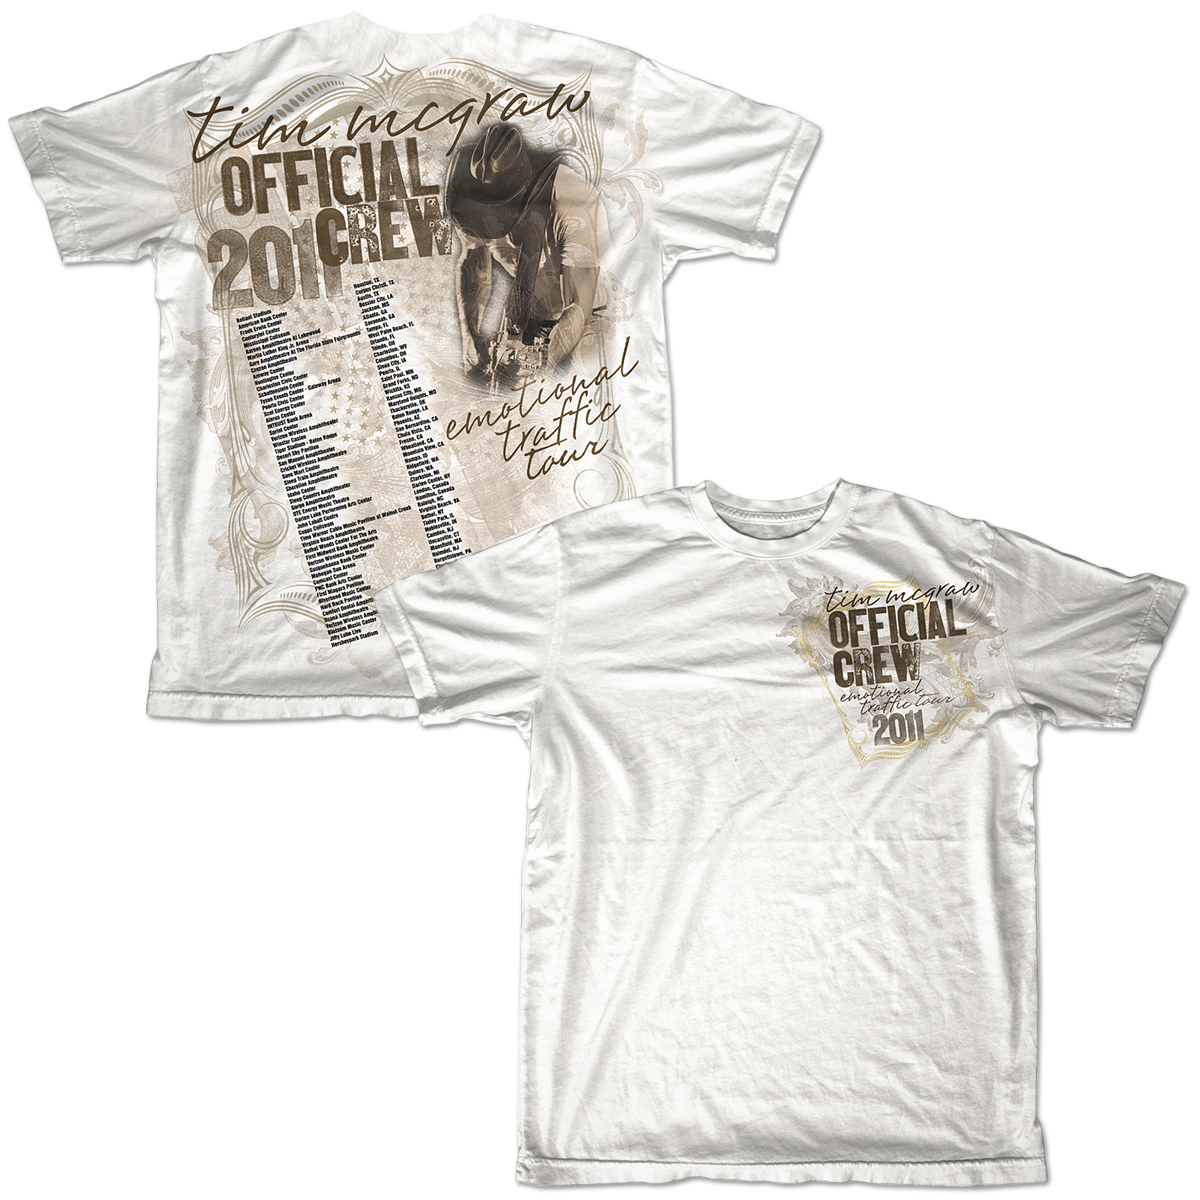 Tim McGraw Official Emotional Traffic Tour Crew T-shirt